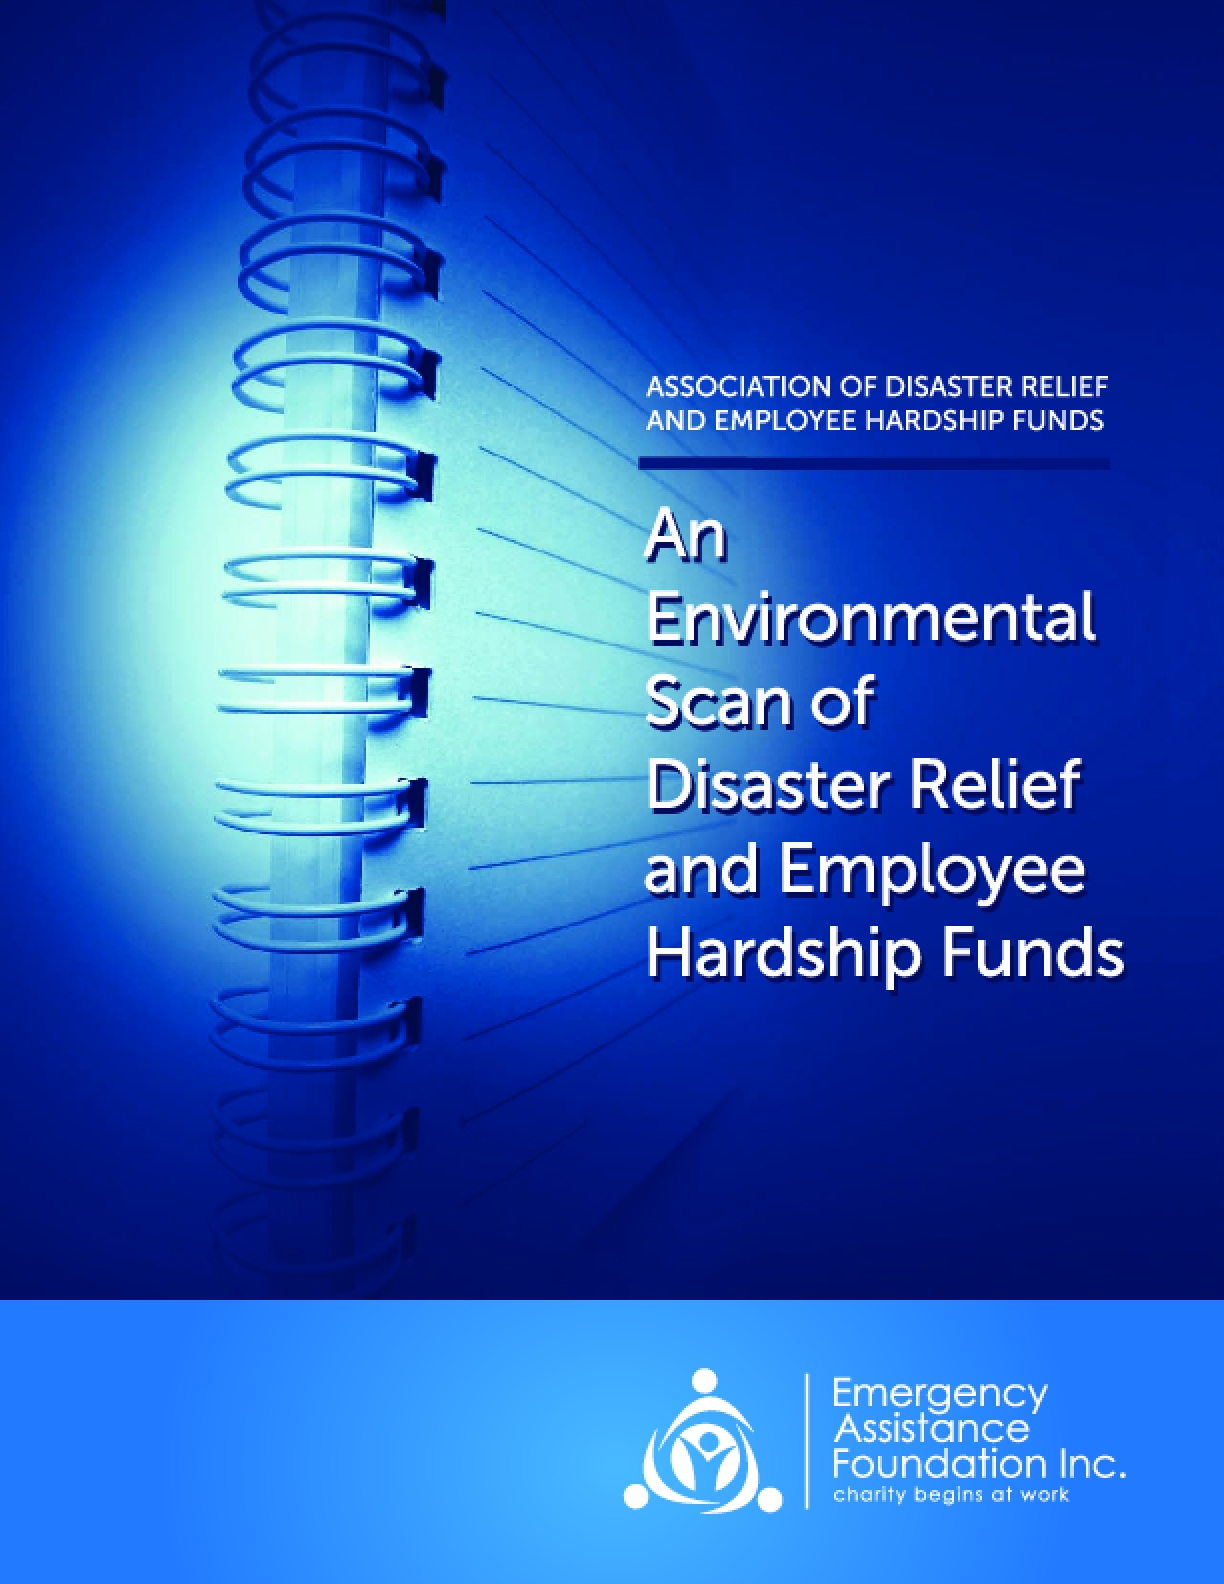 An Environmental Scan of Disaster Relief and Employee Hardship Funds